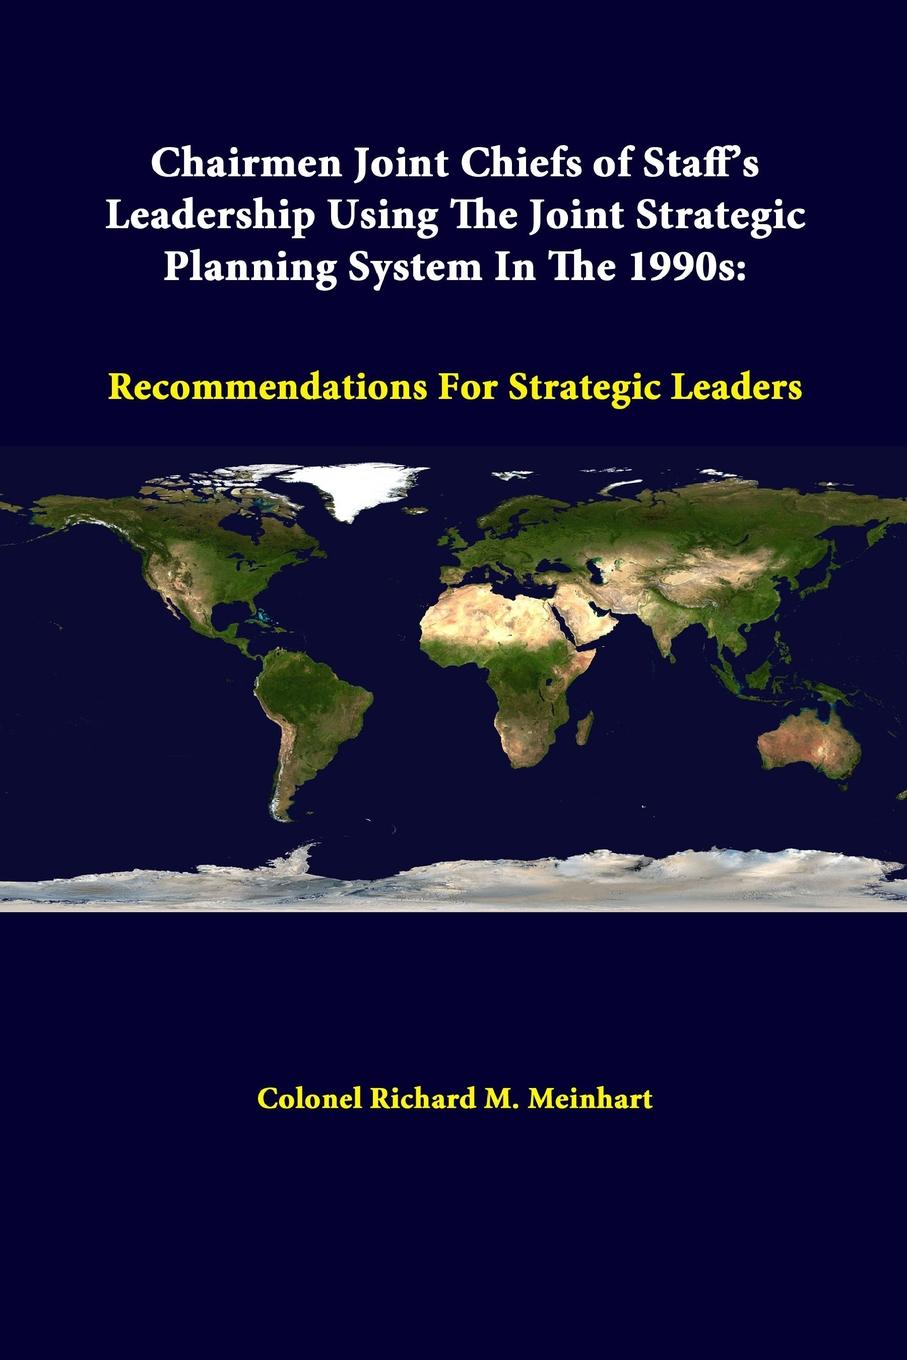 Colonel Richard M. Meinhart, Strategic Studies Institute Chairmen Joint Chiefs Of Staff.s Leadership Using The Joint Strategic Planning System In The 1990s. Recommendations For Strategic Leaders joint